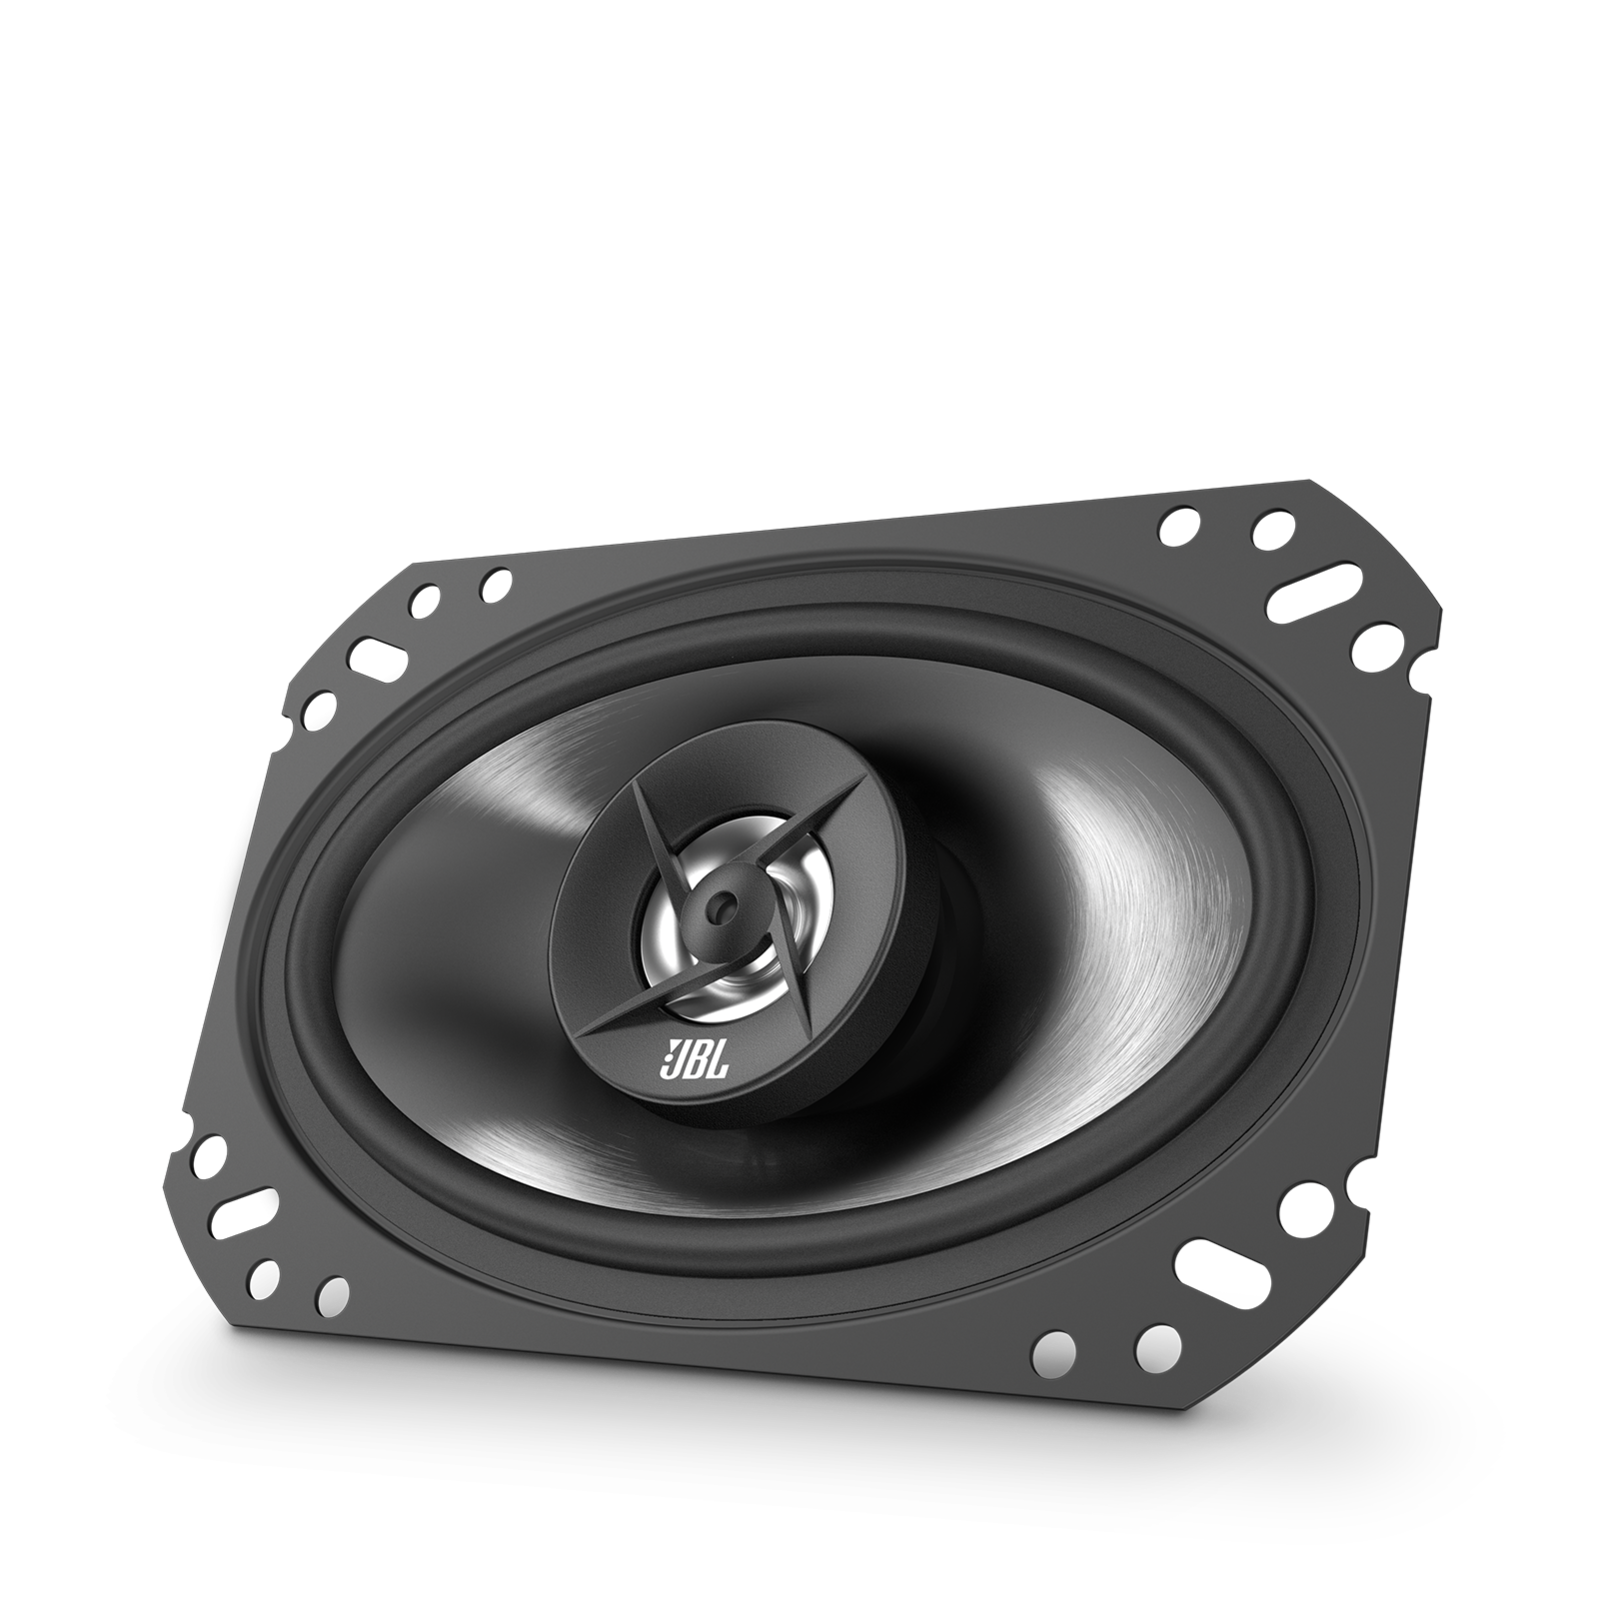 "Stage 6402 - Black - 4"" x 6"" (101mm x 152mm) coaxial car speakers, 105W - Hero"